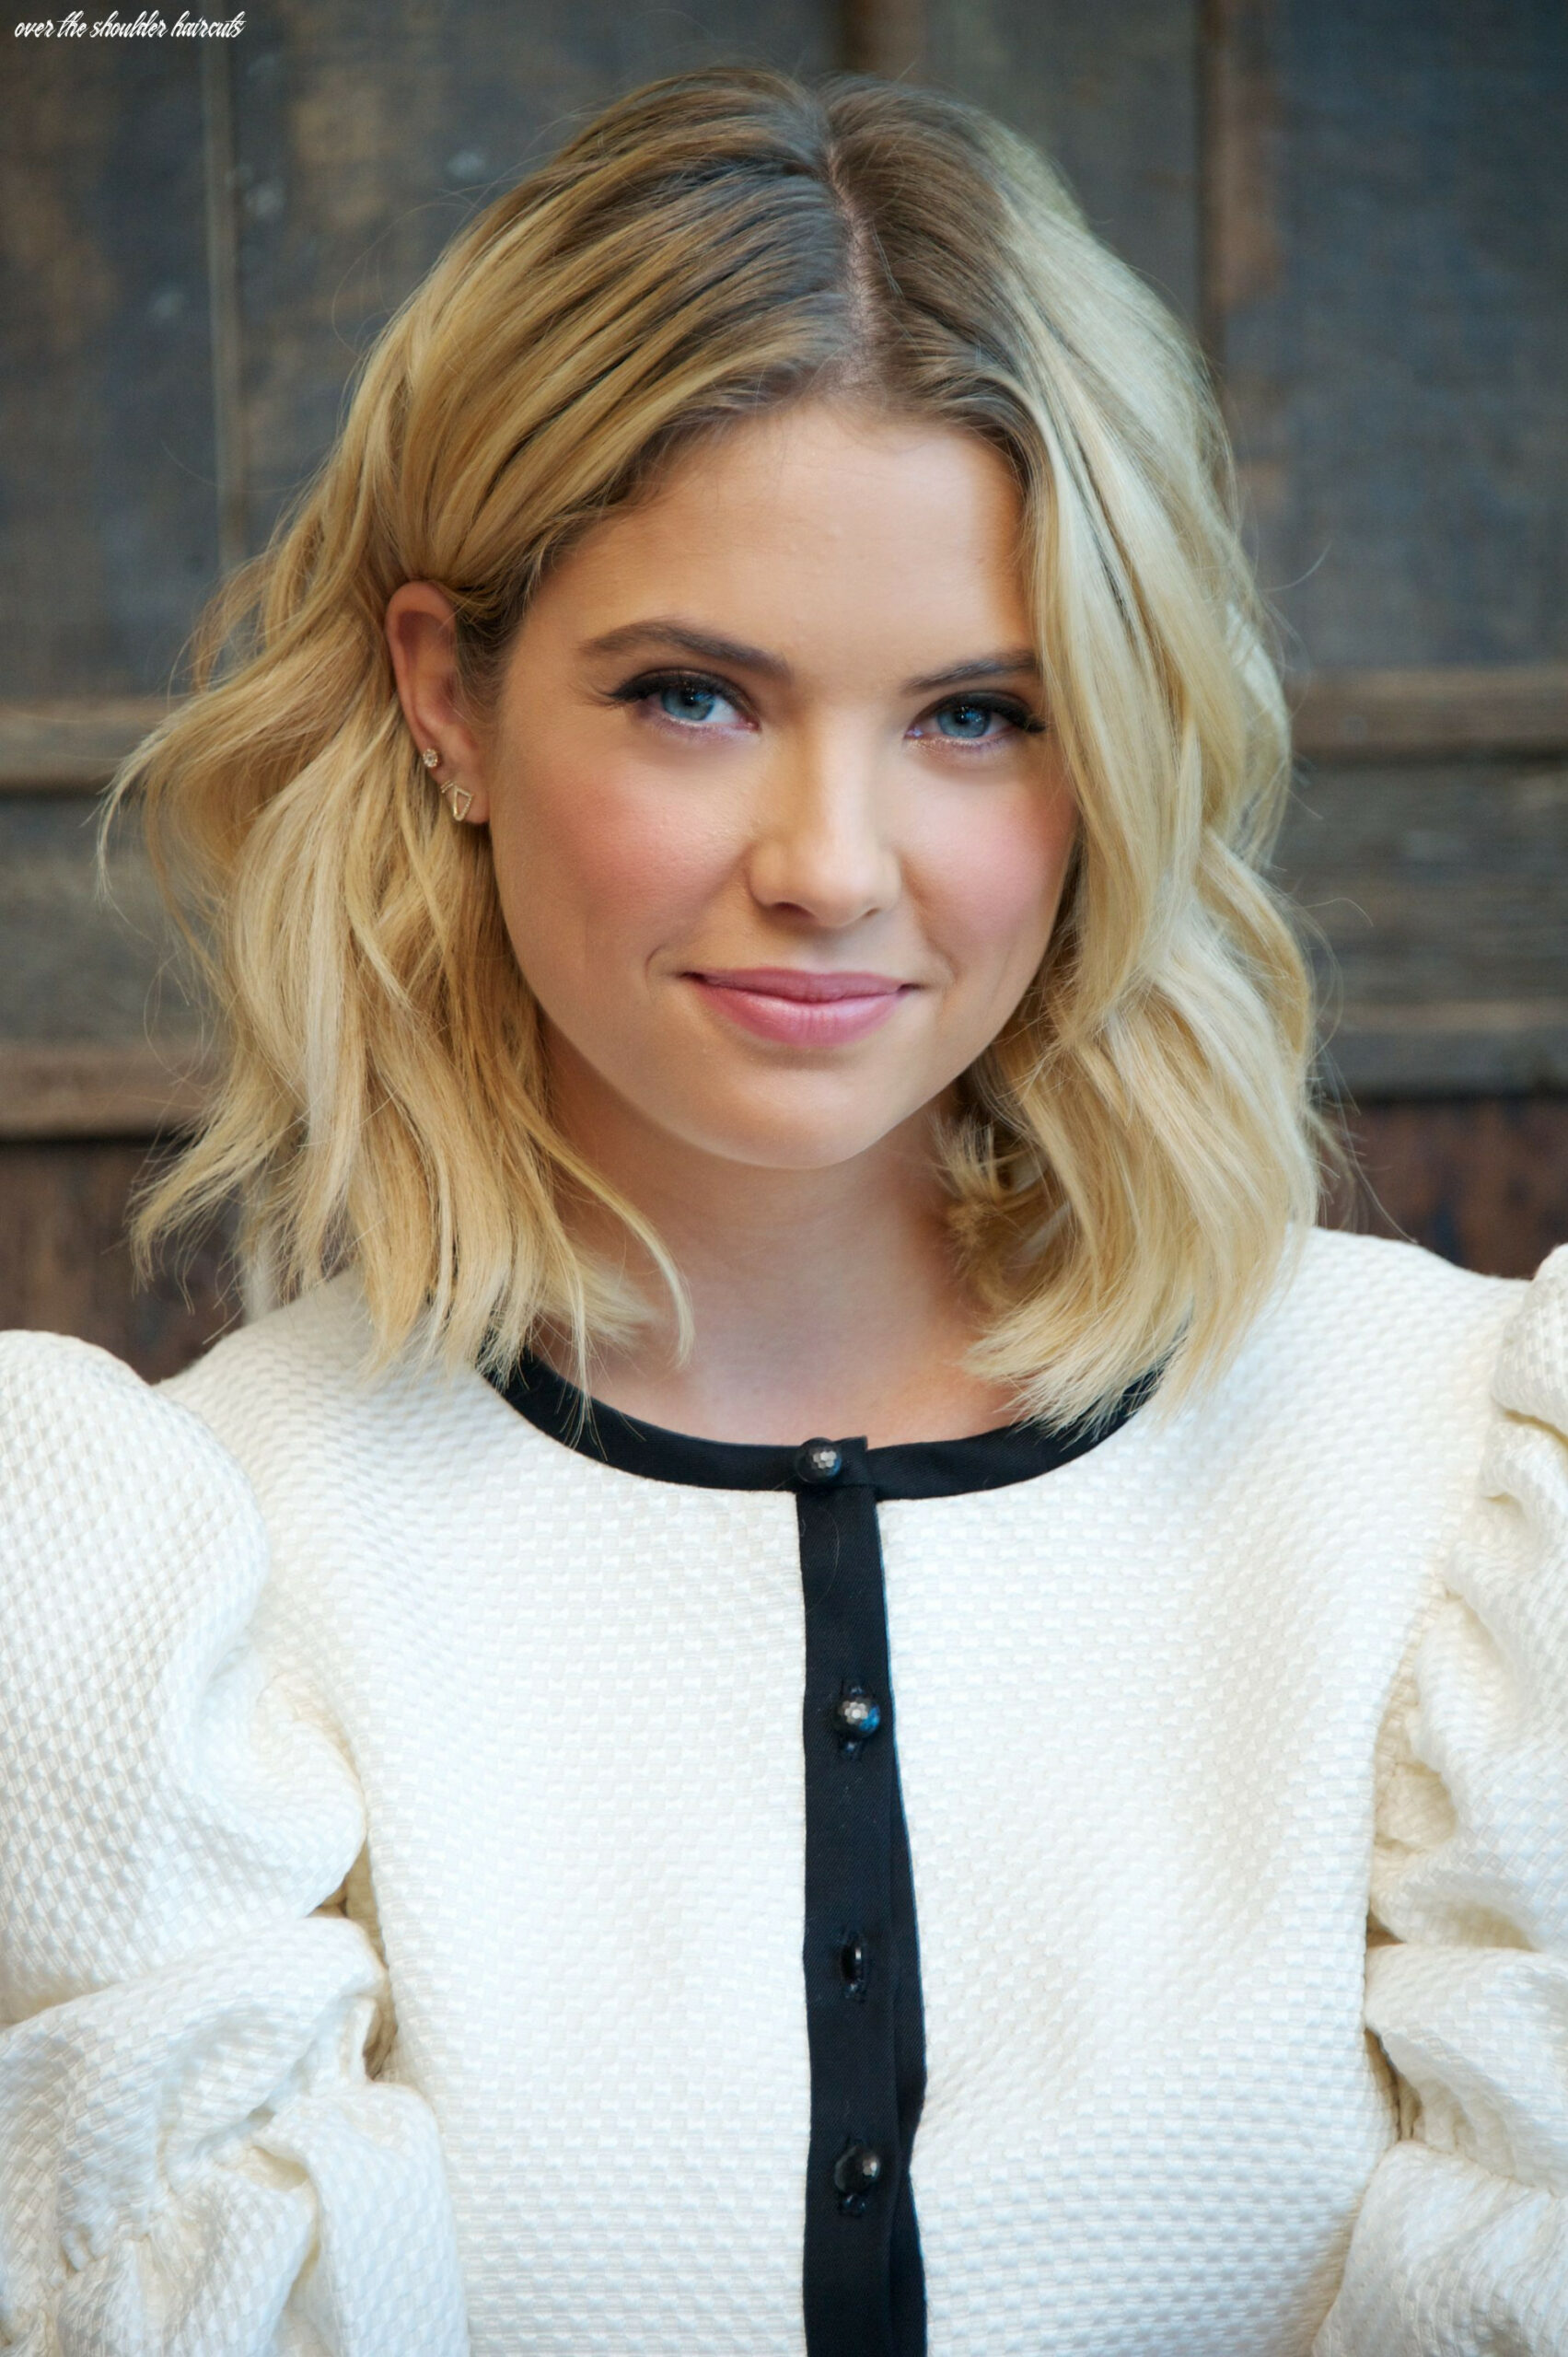 Best shoulder length hairstyles that will suit every face type